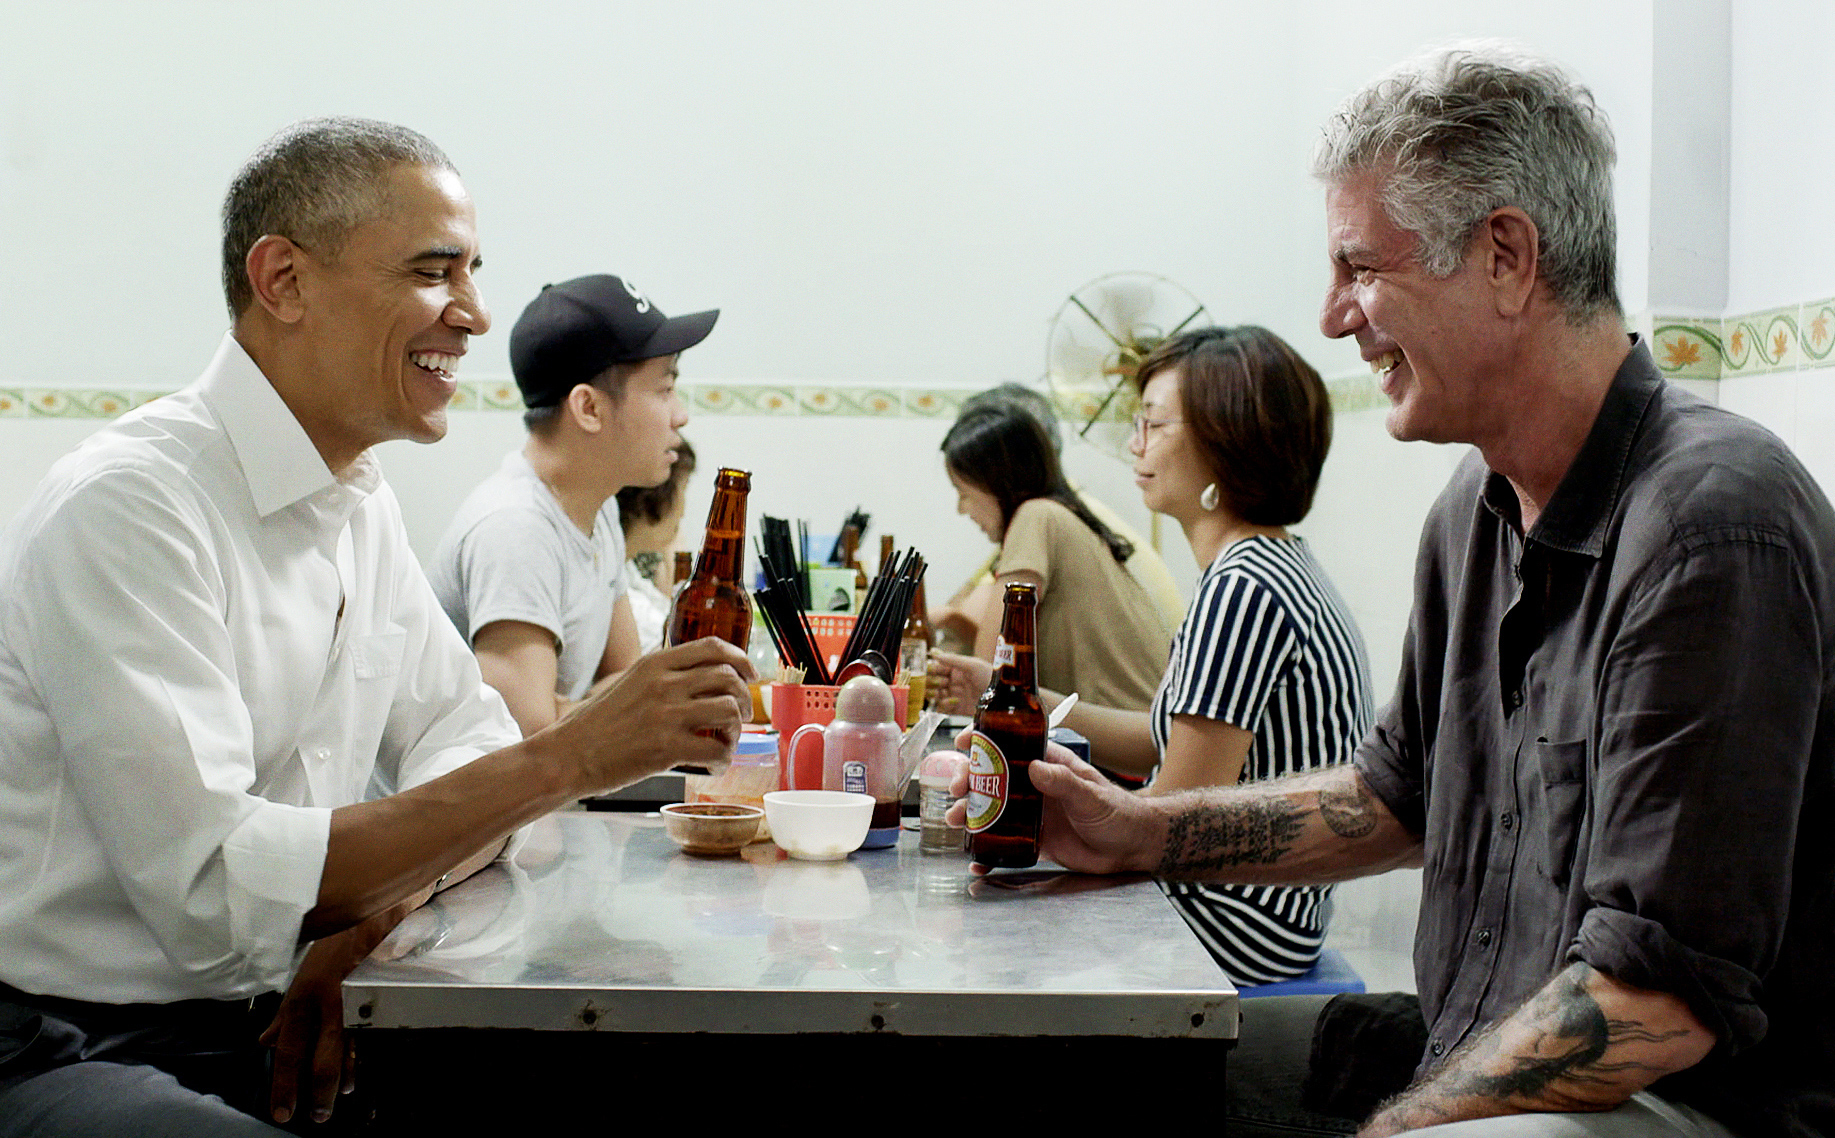 The Table Where Anthony Bourdain and Barack Obama Had Lunch Together Is Now Encased in Glass